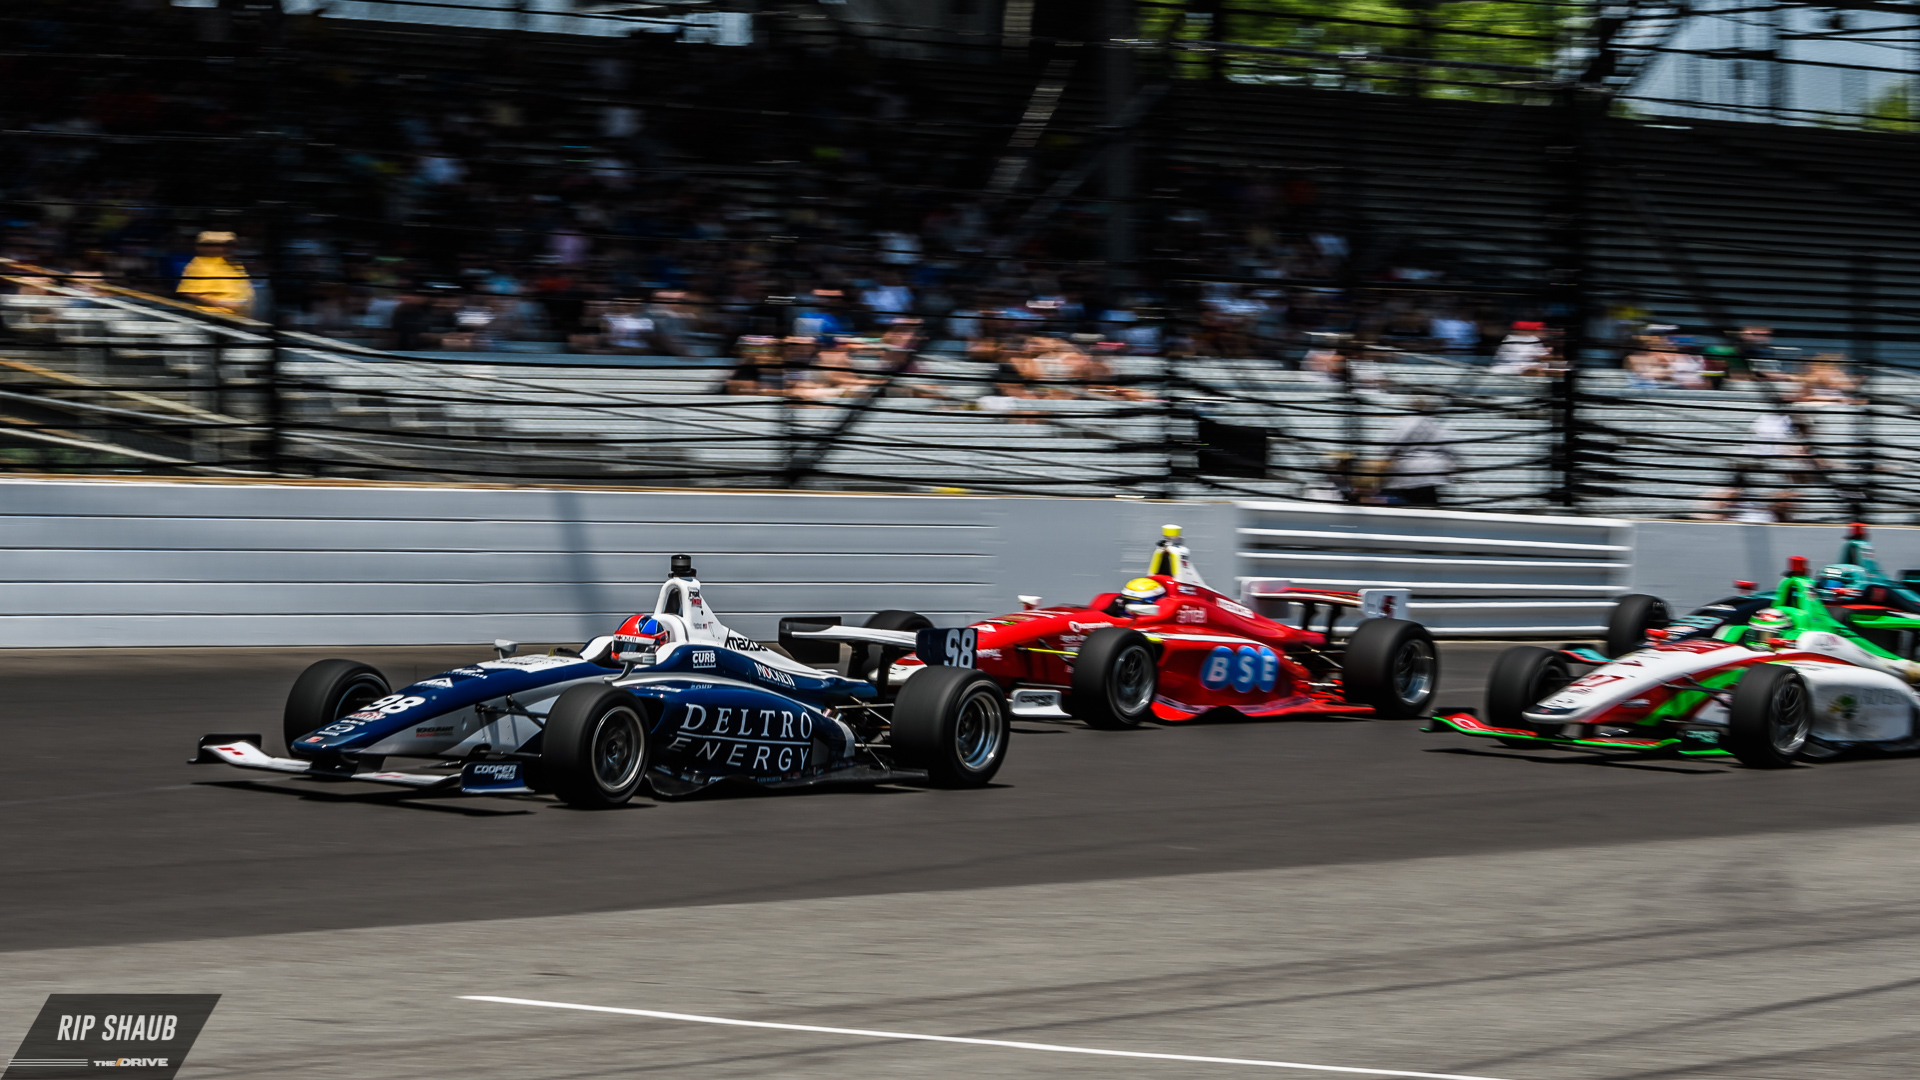 Development drivers compete in road course, street course, and oval configurations as part of the MRTI.